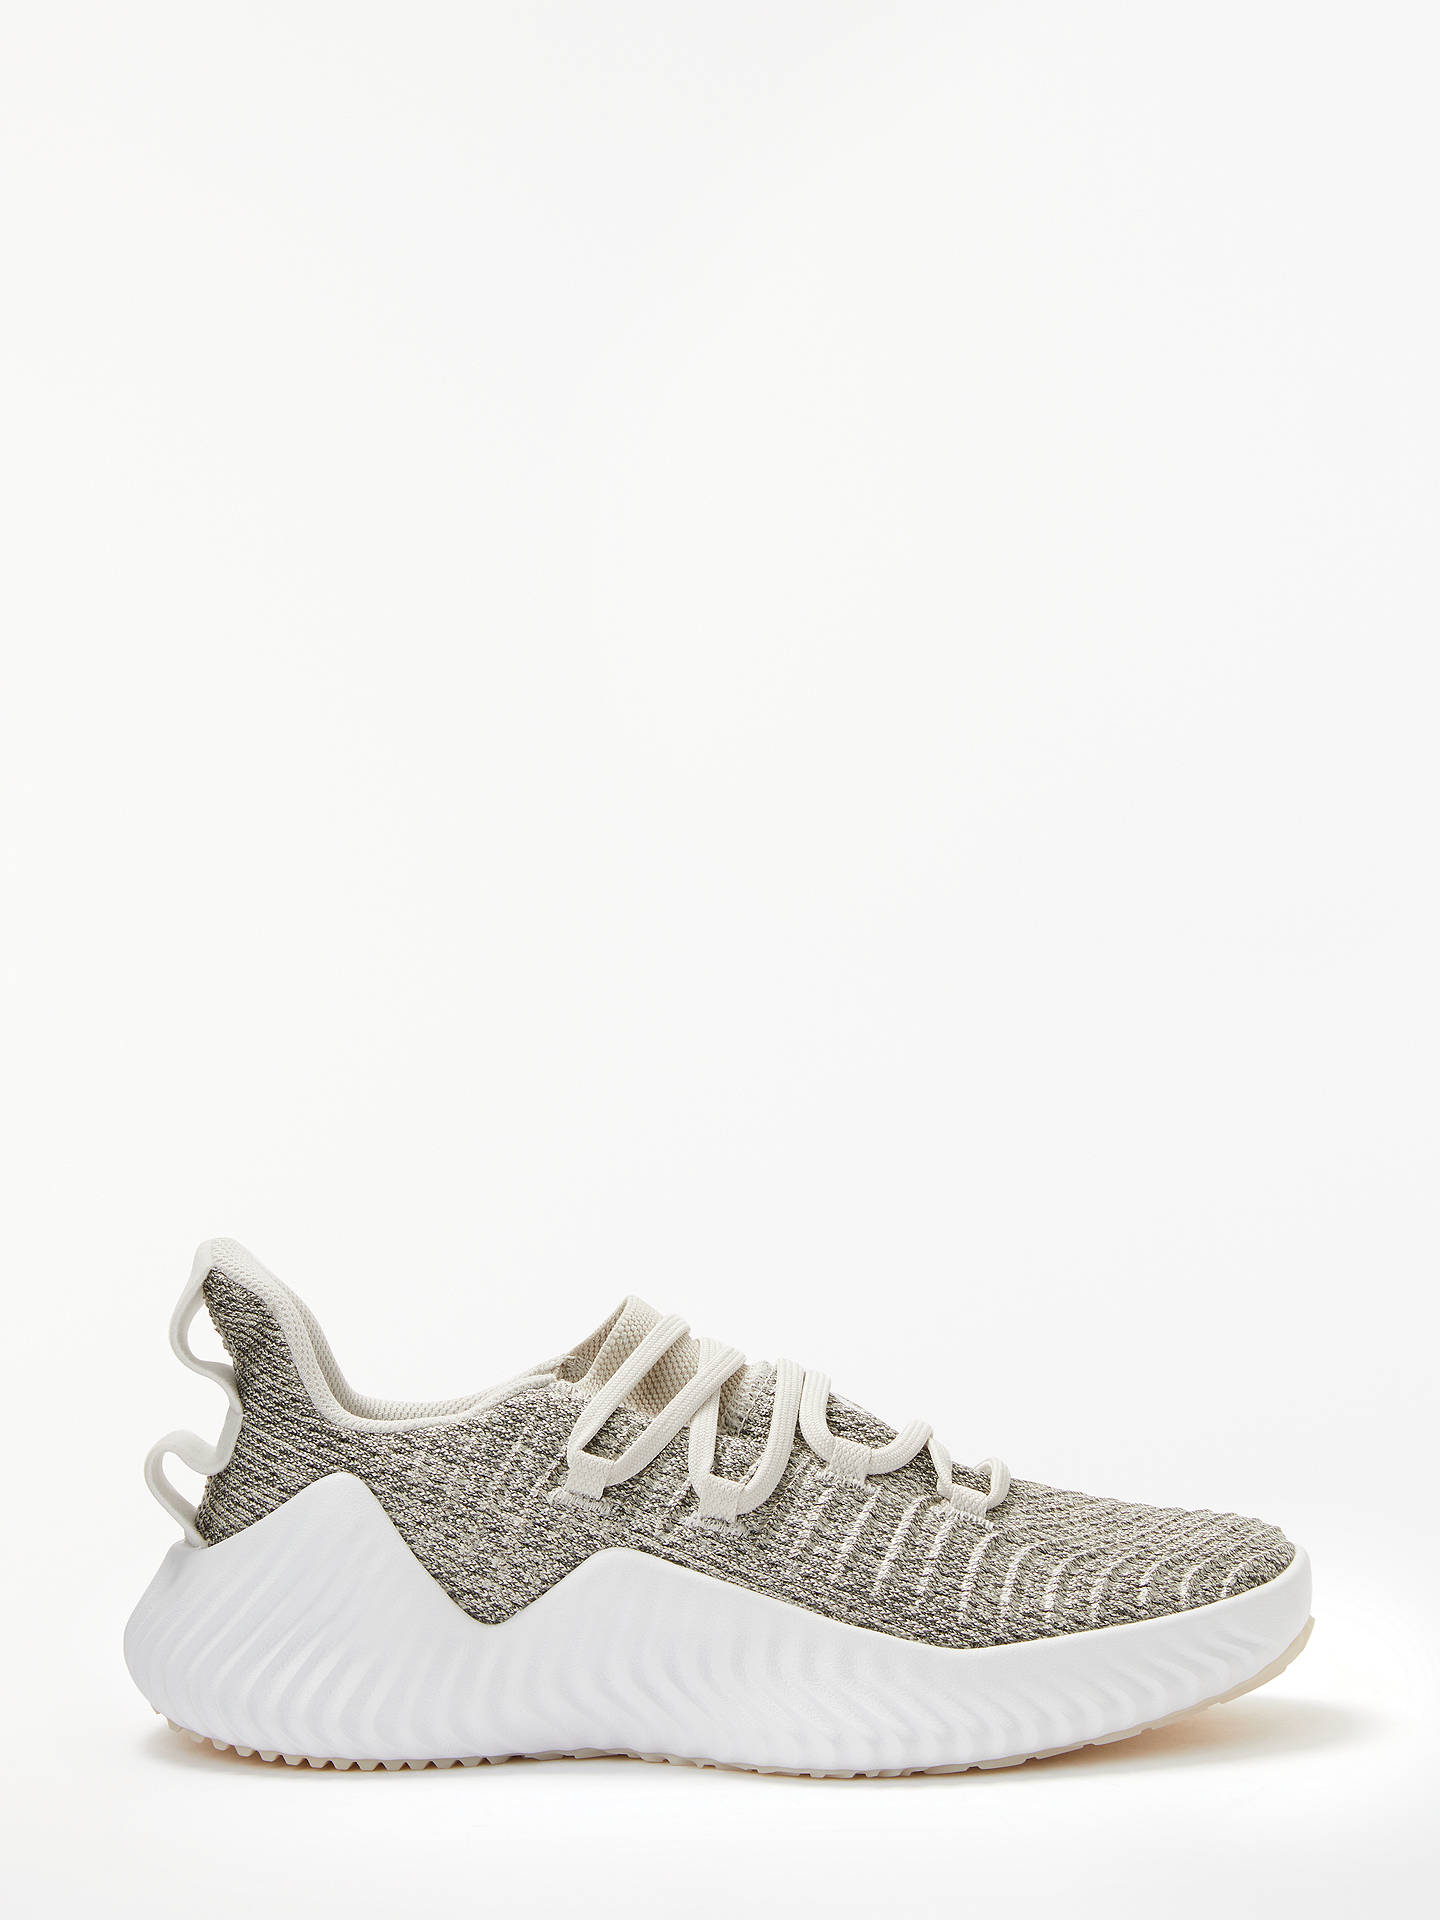 adidas AlphaBounce Women's Trainers, Raw White/Grey at John ...